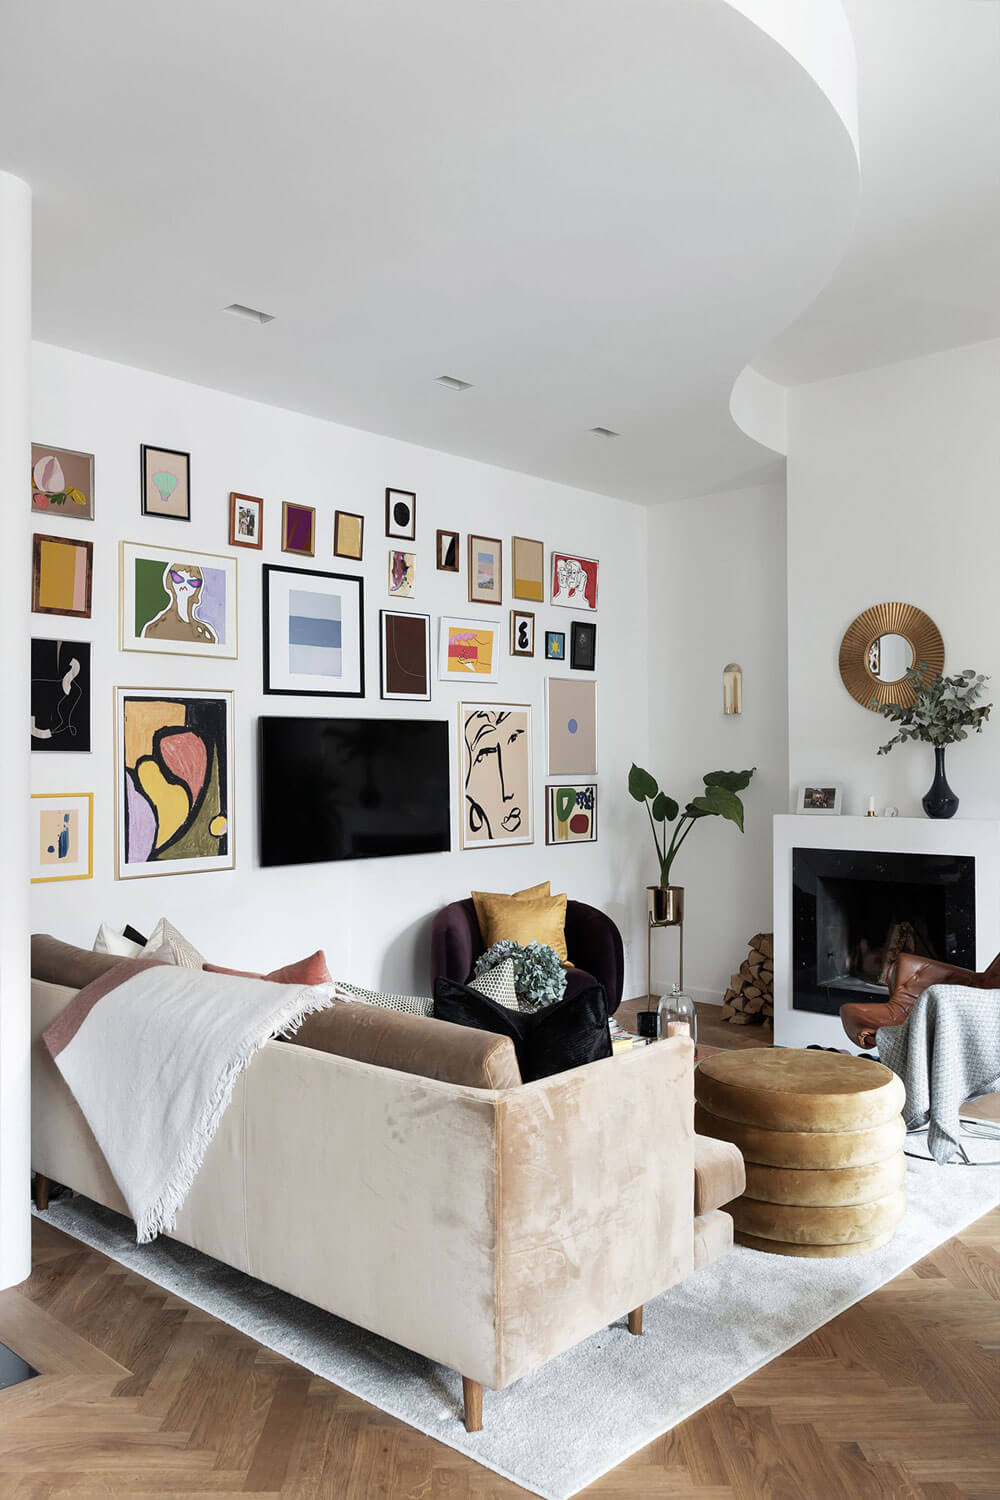 The Art-Filled Home of Henrietta Fromholtz